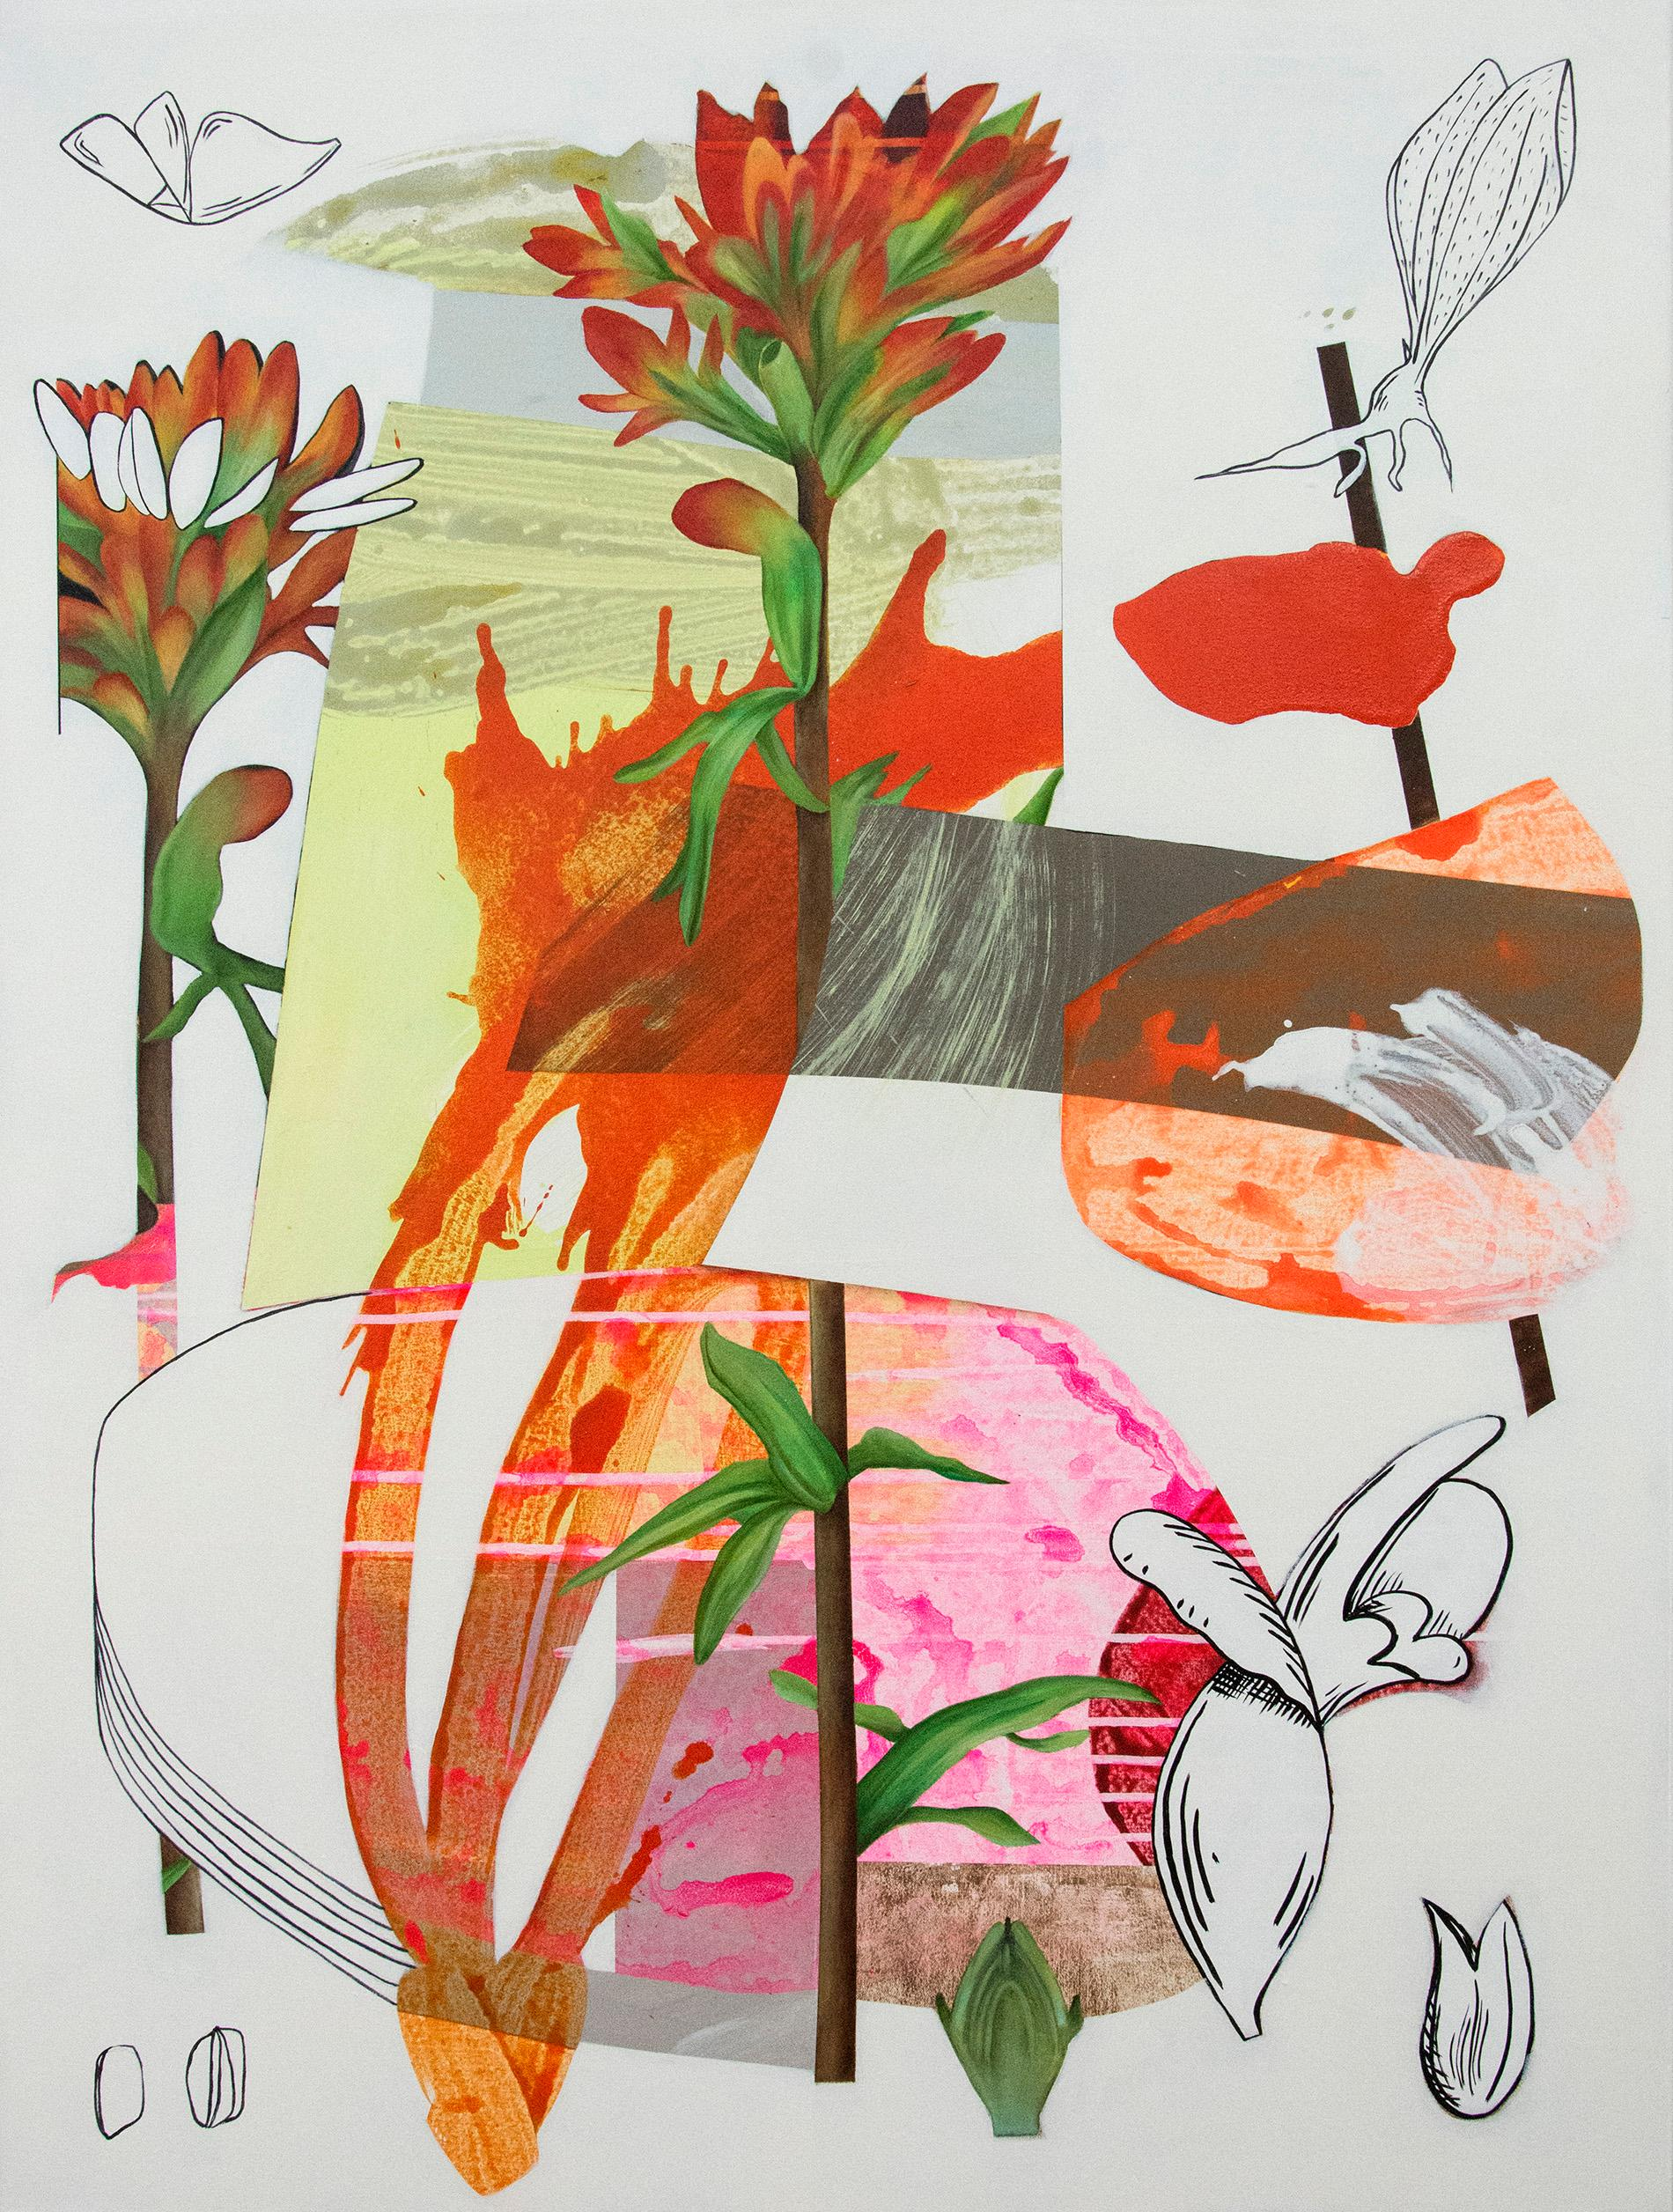 Scarlet Cup - Layered botanicals & shapes in red, pink and orange